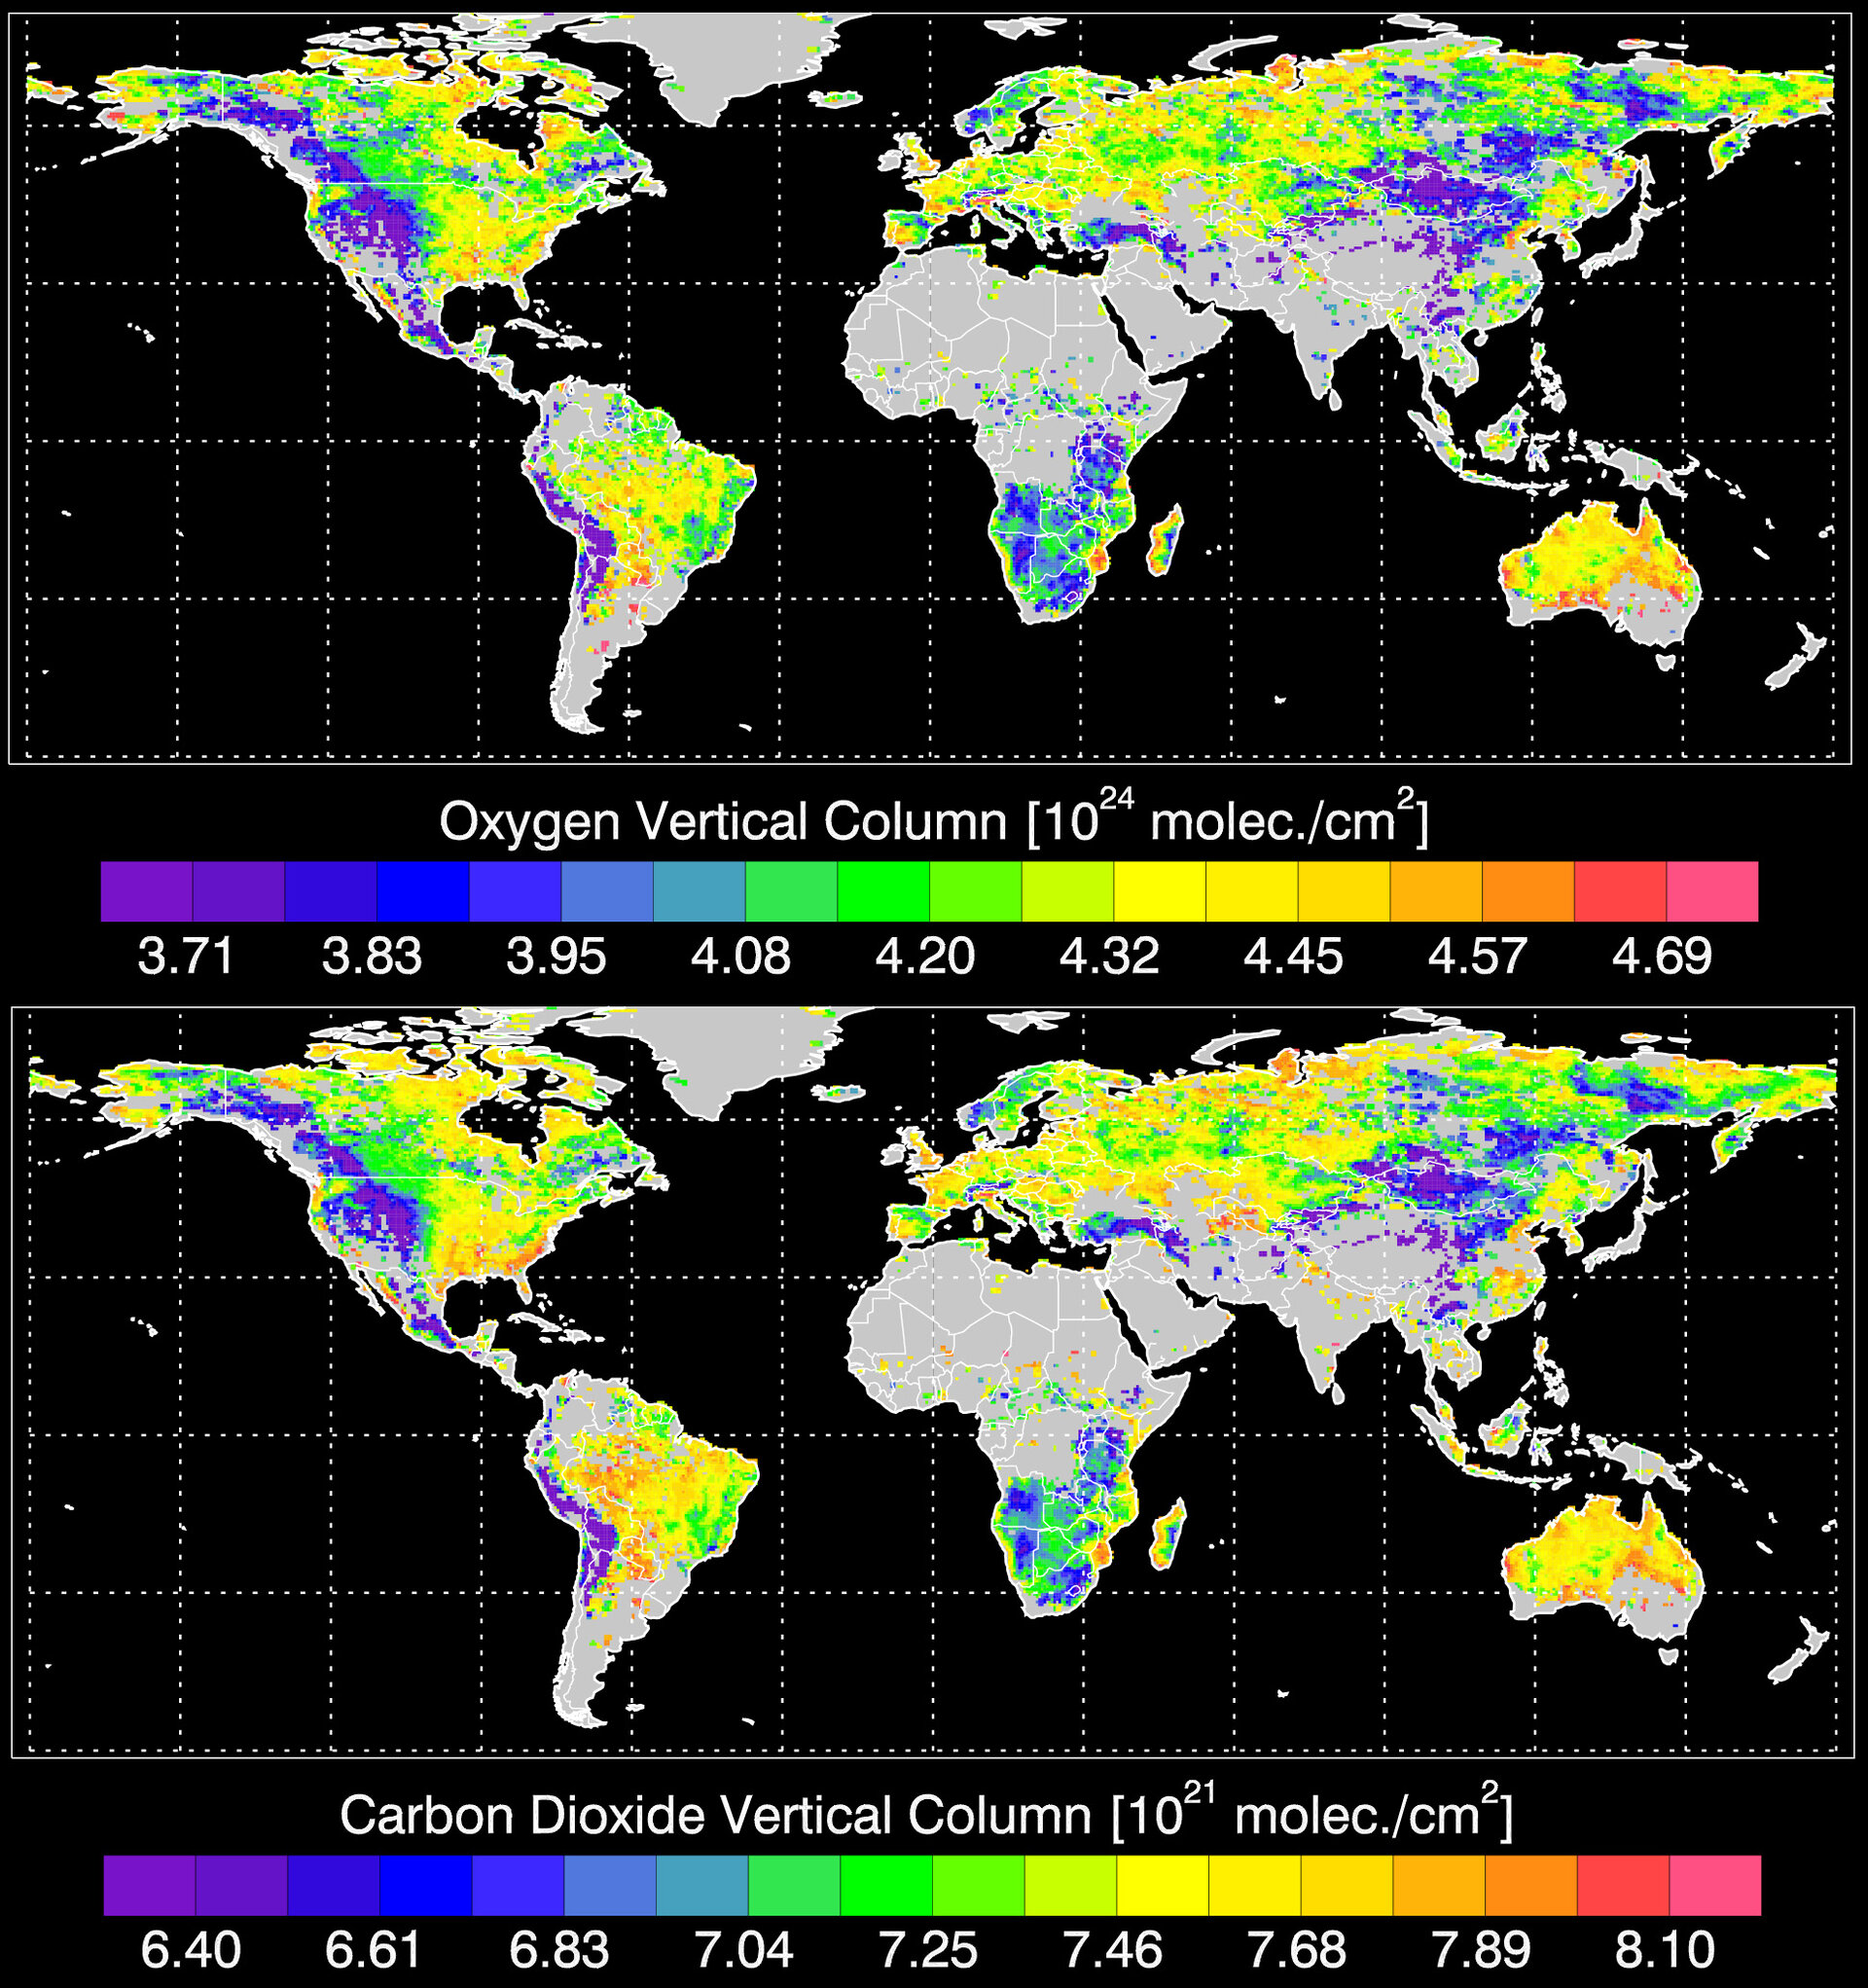 Comparison between oxygen (top) and carbon dioxide figures